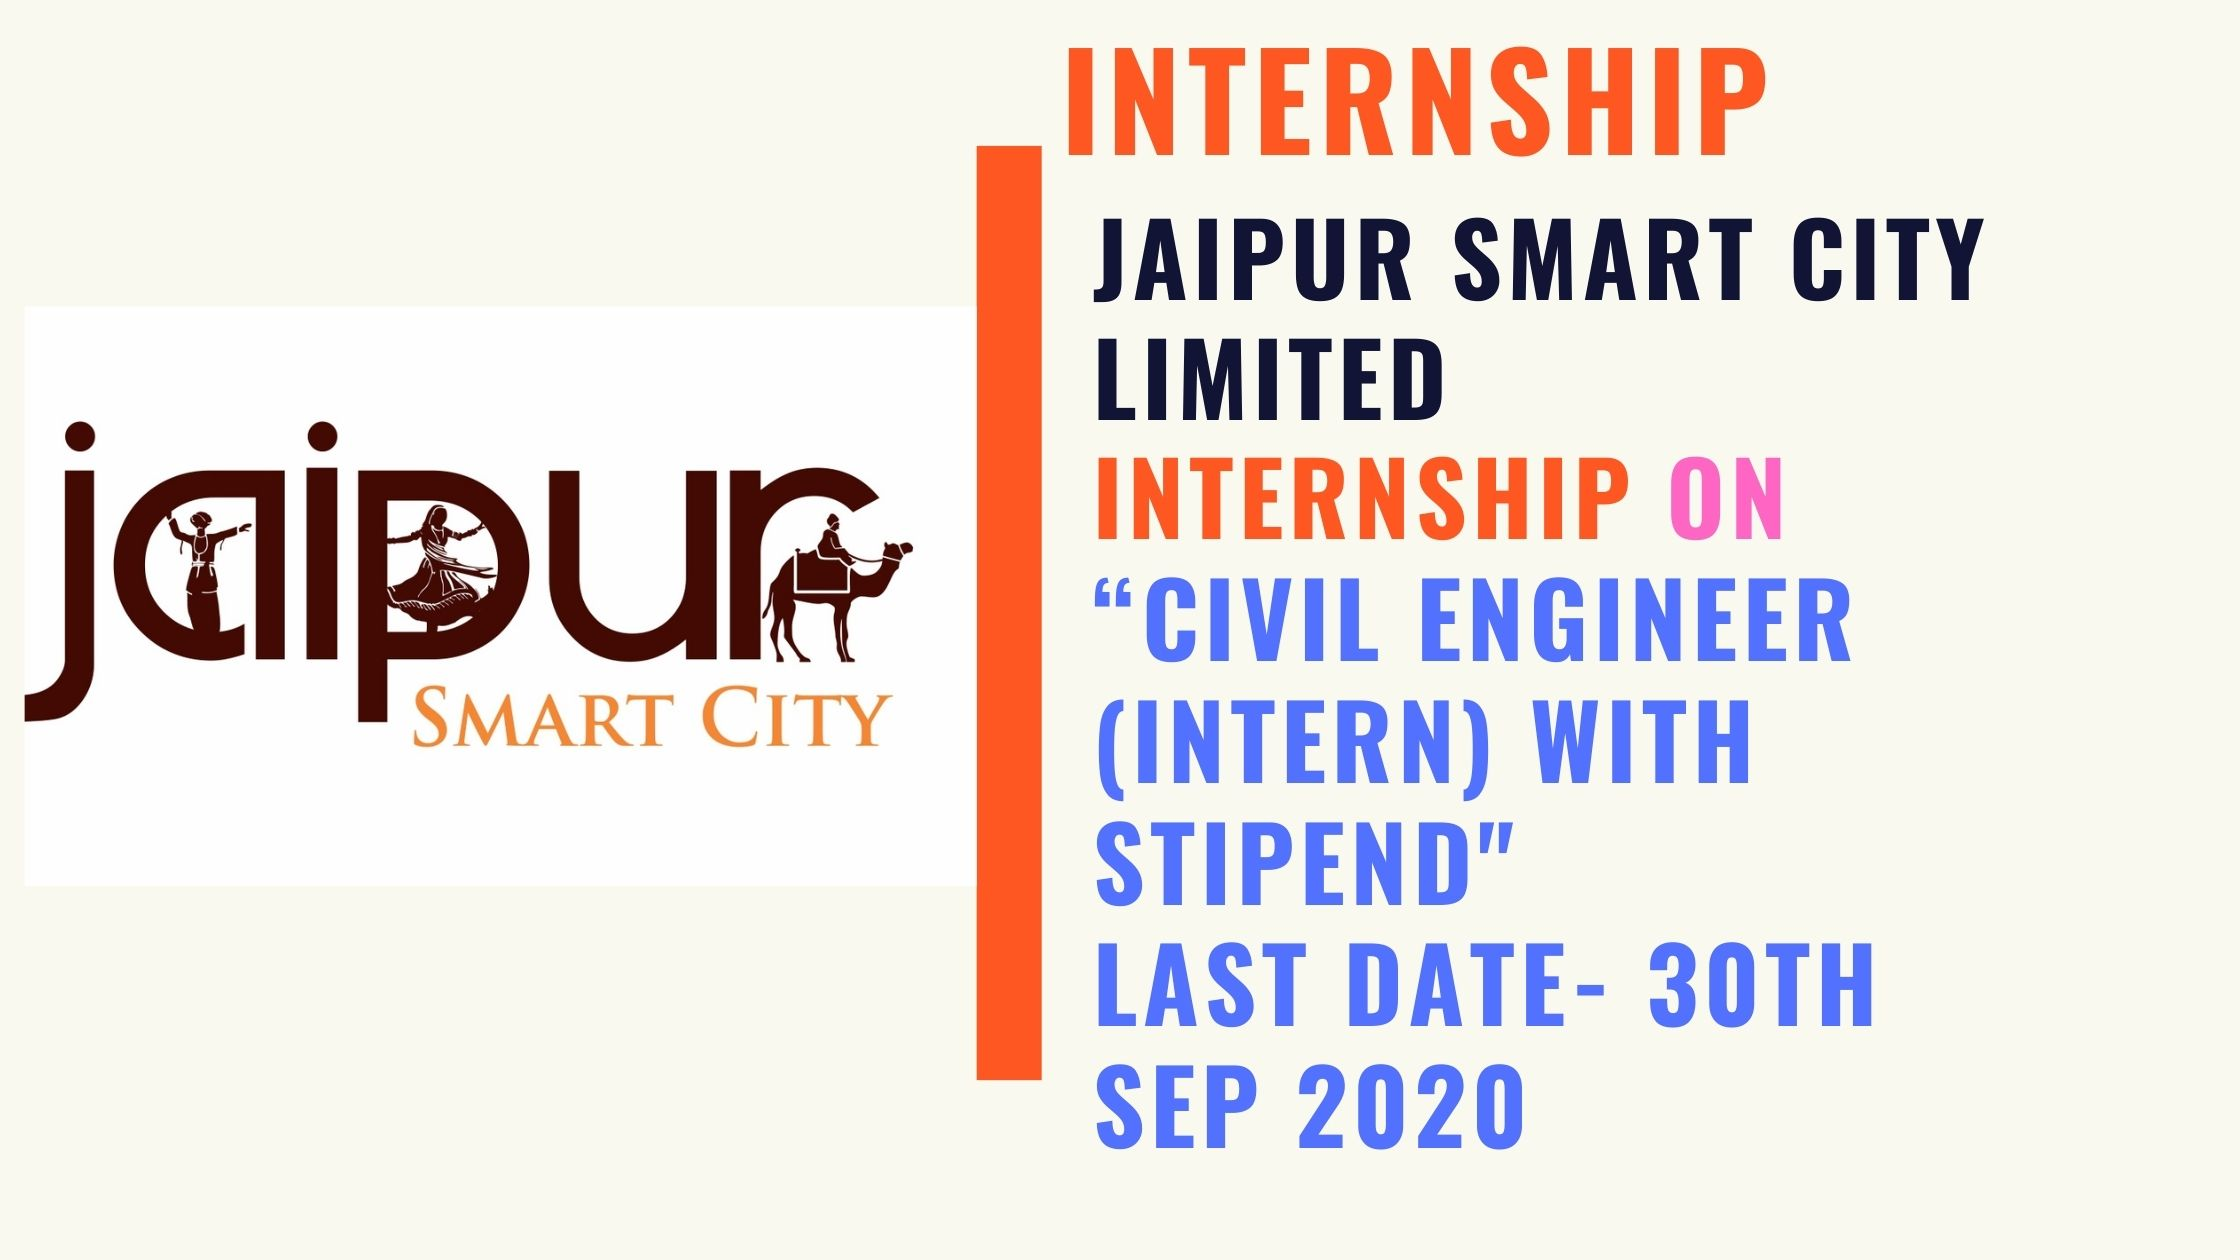 CIVIL ENGINEER (INTERN) WITH STIPEND Jaipur Smart City Limited